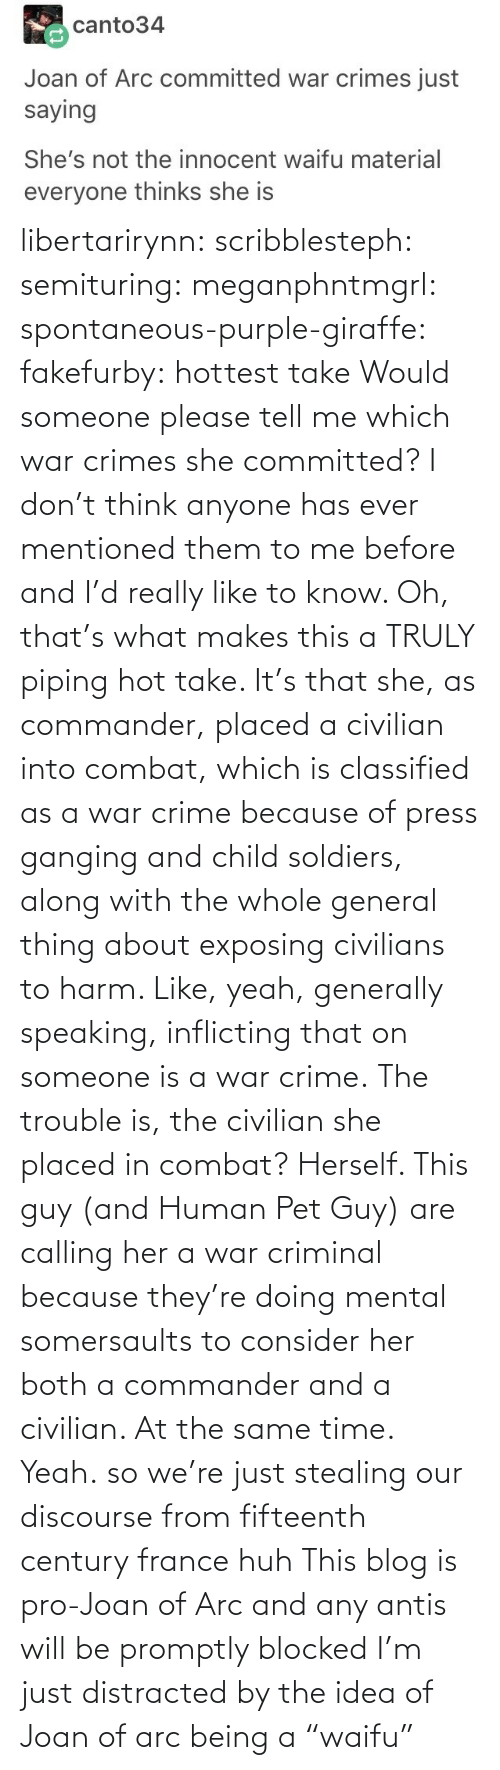 "From: libertarirynn: scribblesteph:  semituring:  meganphntmgrl:  spontaneous-purple-giraffe:   fakefurby: hottest take  Would someone please tell me which war crimes she committed? I don't think anyone has ever mentioned them to me before and I'd really like to know.    Oh, that's what makes this a TRULY piping hot take. It's that she, as commander, placed a civilian into combat, which is classified as a war crime because of press ganging and child soldiers, along with the whole general thing about exposing civilians to harm. Like, yeah, generally speaking, inflicting that on someone is a war crime. The trouble is, the civilian she placed in combat? Herself.  This guy (and Human Pet Guy) are calling her a war criminal because they're doing mental somersaults to consider her both a commander and a civilian. At the same time.  Yeah.  so we're just stealing our discourse from fifteenth century france huh   This blog is pro-Joan of Arc and any antis will be promptly blocked   I'm just distracted by the idea of Joan of arc being a ""waifu"""